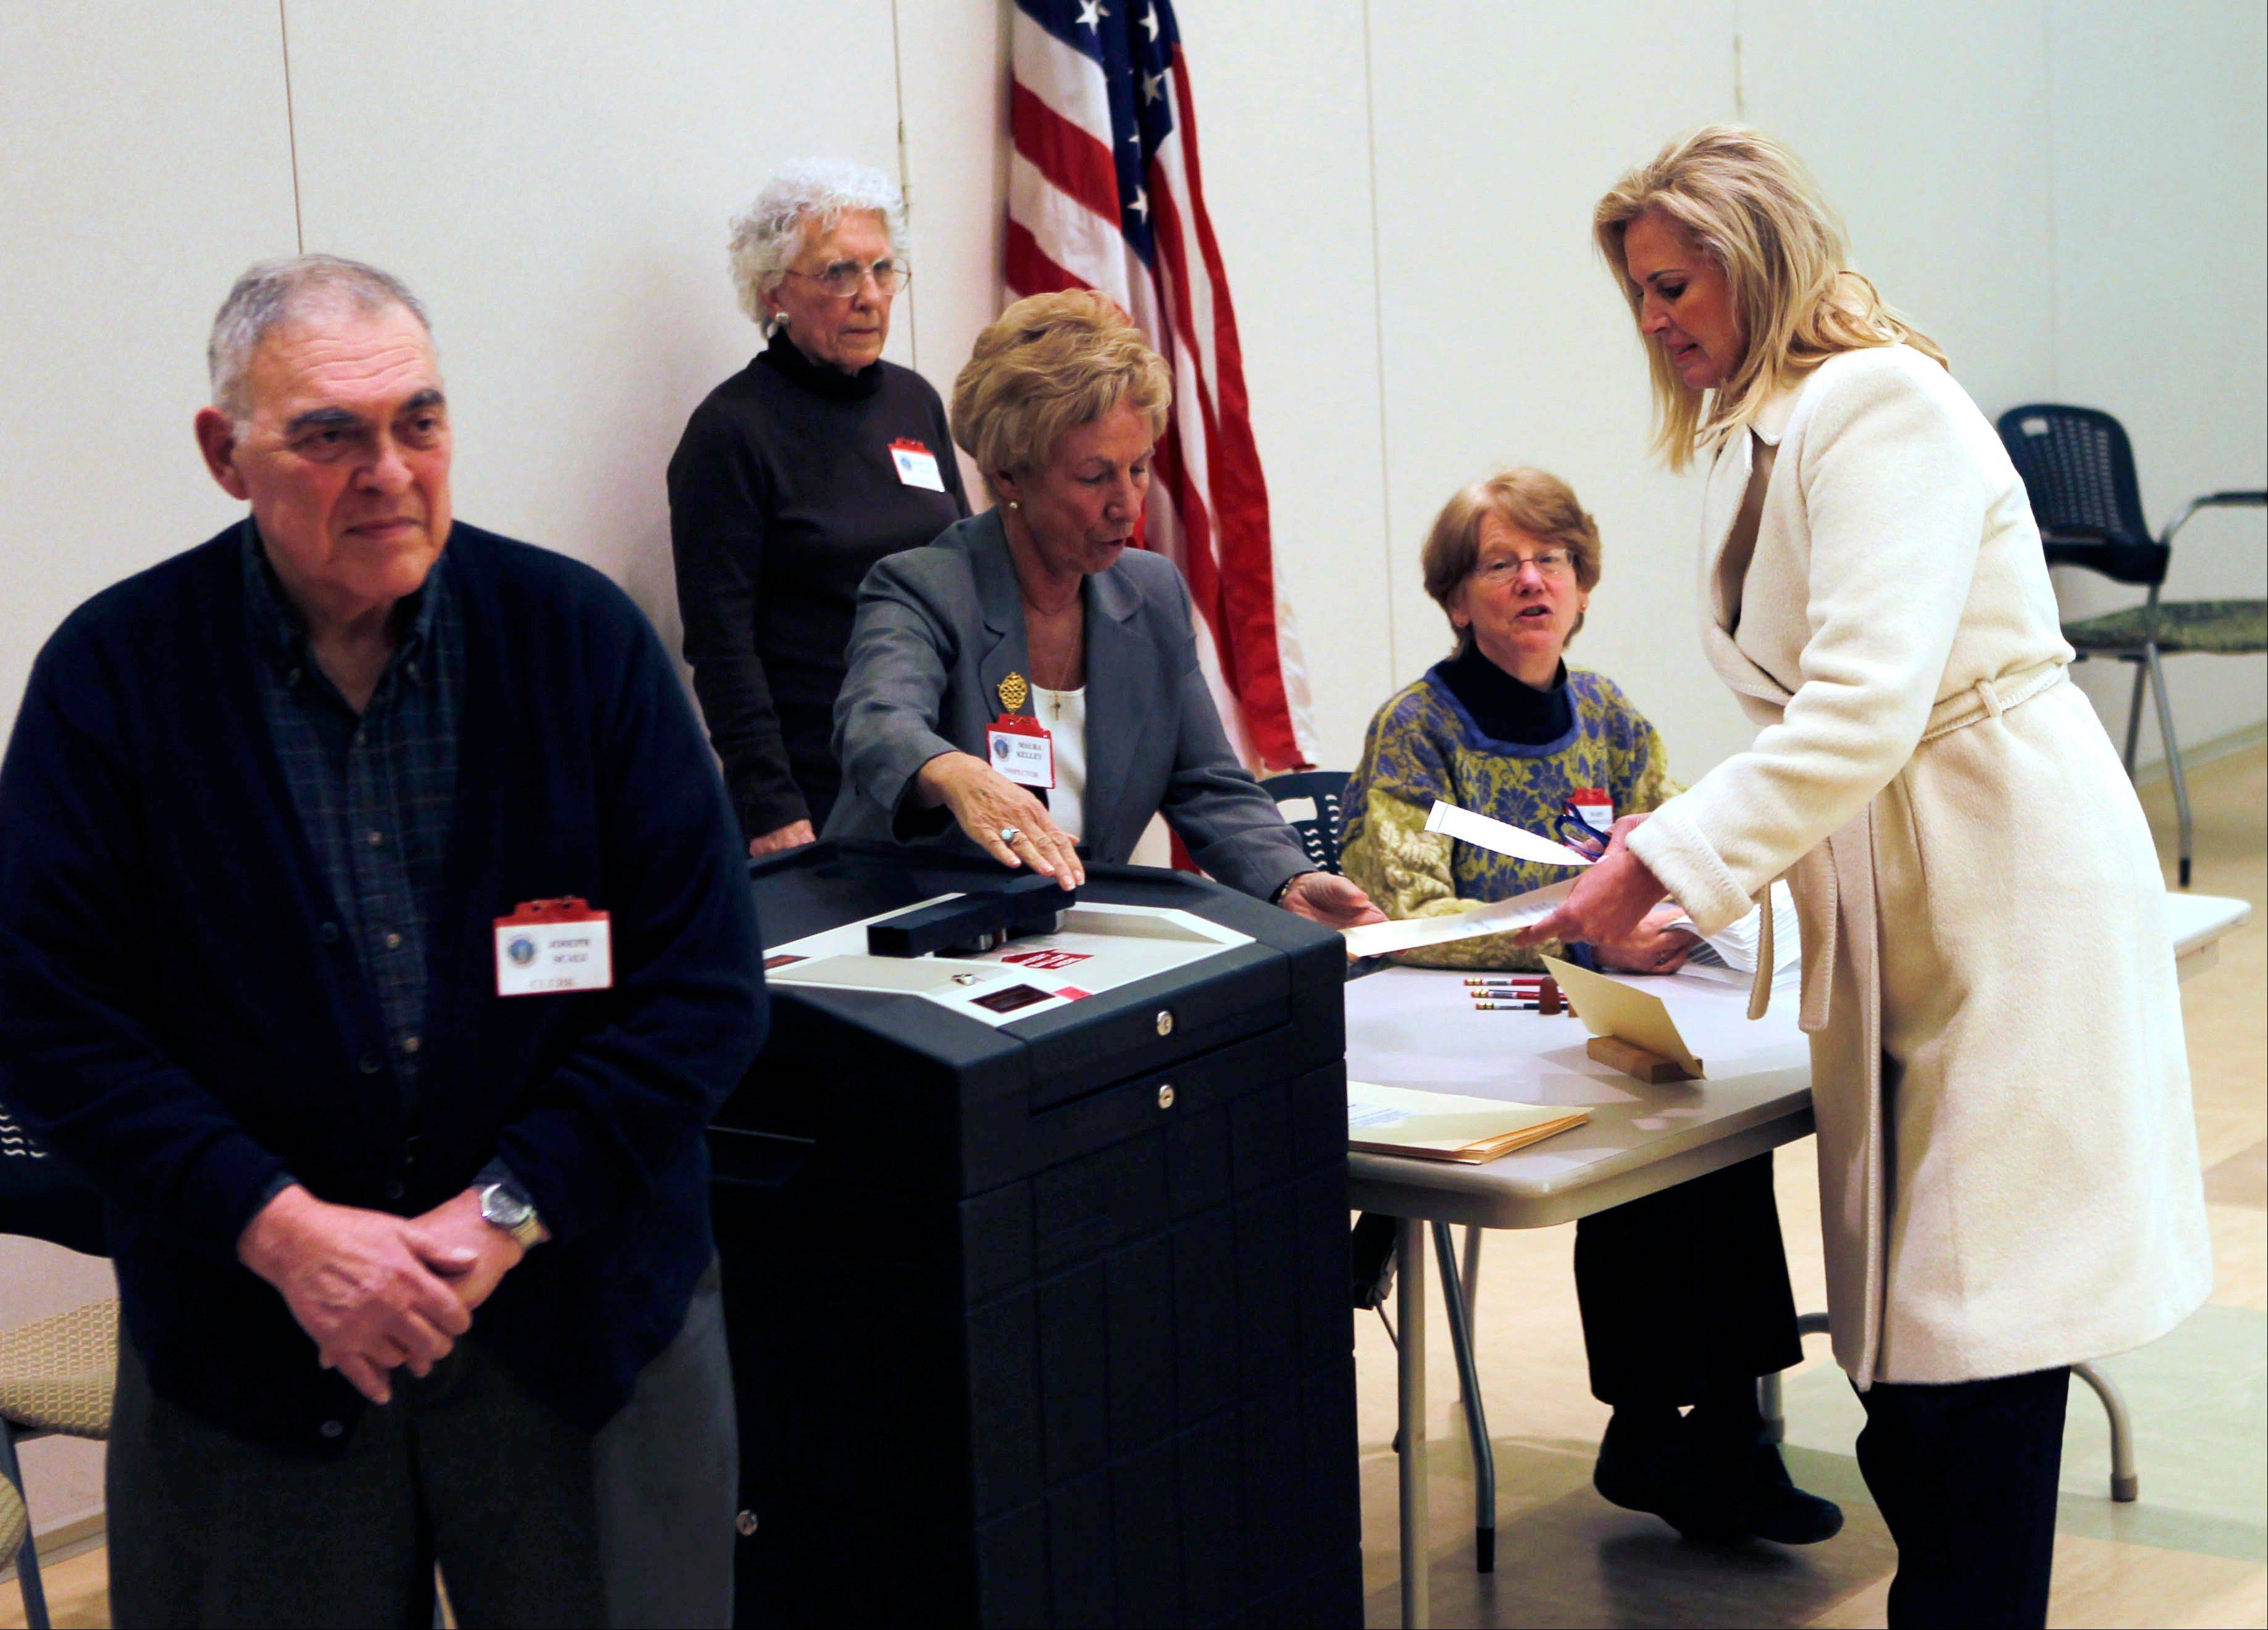 In this March 6, 2012, photo, Ann Romney, wife of Republican presidential candidate former Massachusetts Gov. Mitt Romney votes in the Super Tuesday Massachusetts primary at the Beech Street Senior Center in Belmont, Mass., as Maryann Scali, who served with Ann on the Belmont Town Meeting together, watches. Husband Joe Scali is at front left.